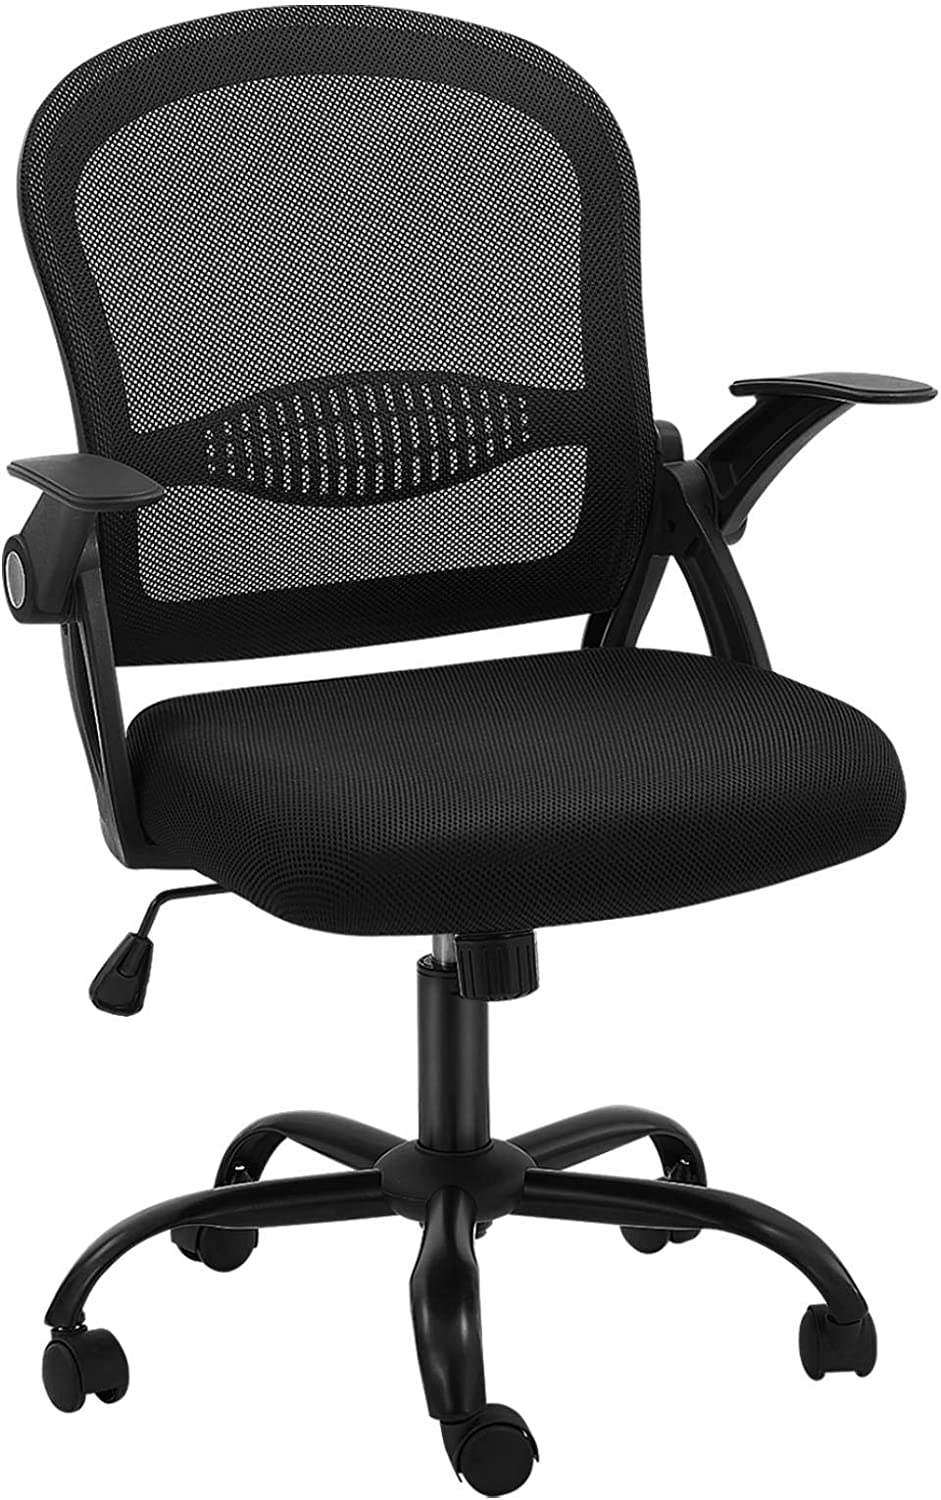 Ergonomic Office Clearance SALE Limited time Desk Chair Mesh Mid- Popular shop is the lowest price challenge Swivel Task Computer